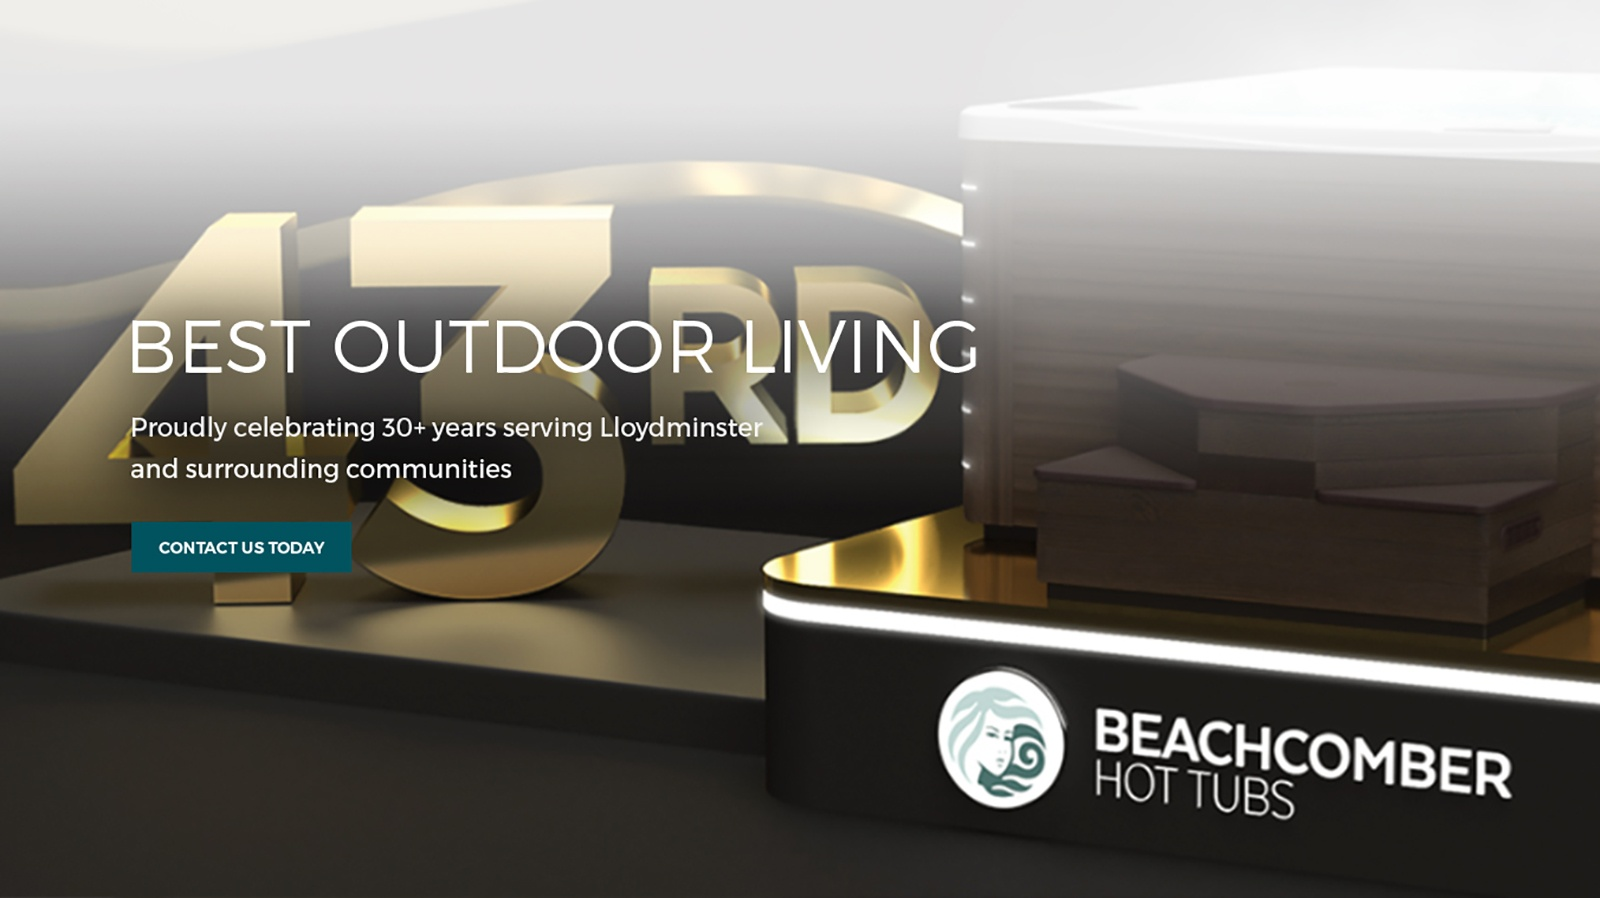 Best Outdoor Living proudly Celebrating 30 Plus Years Serving Lloydminster and Surrounding Communities.